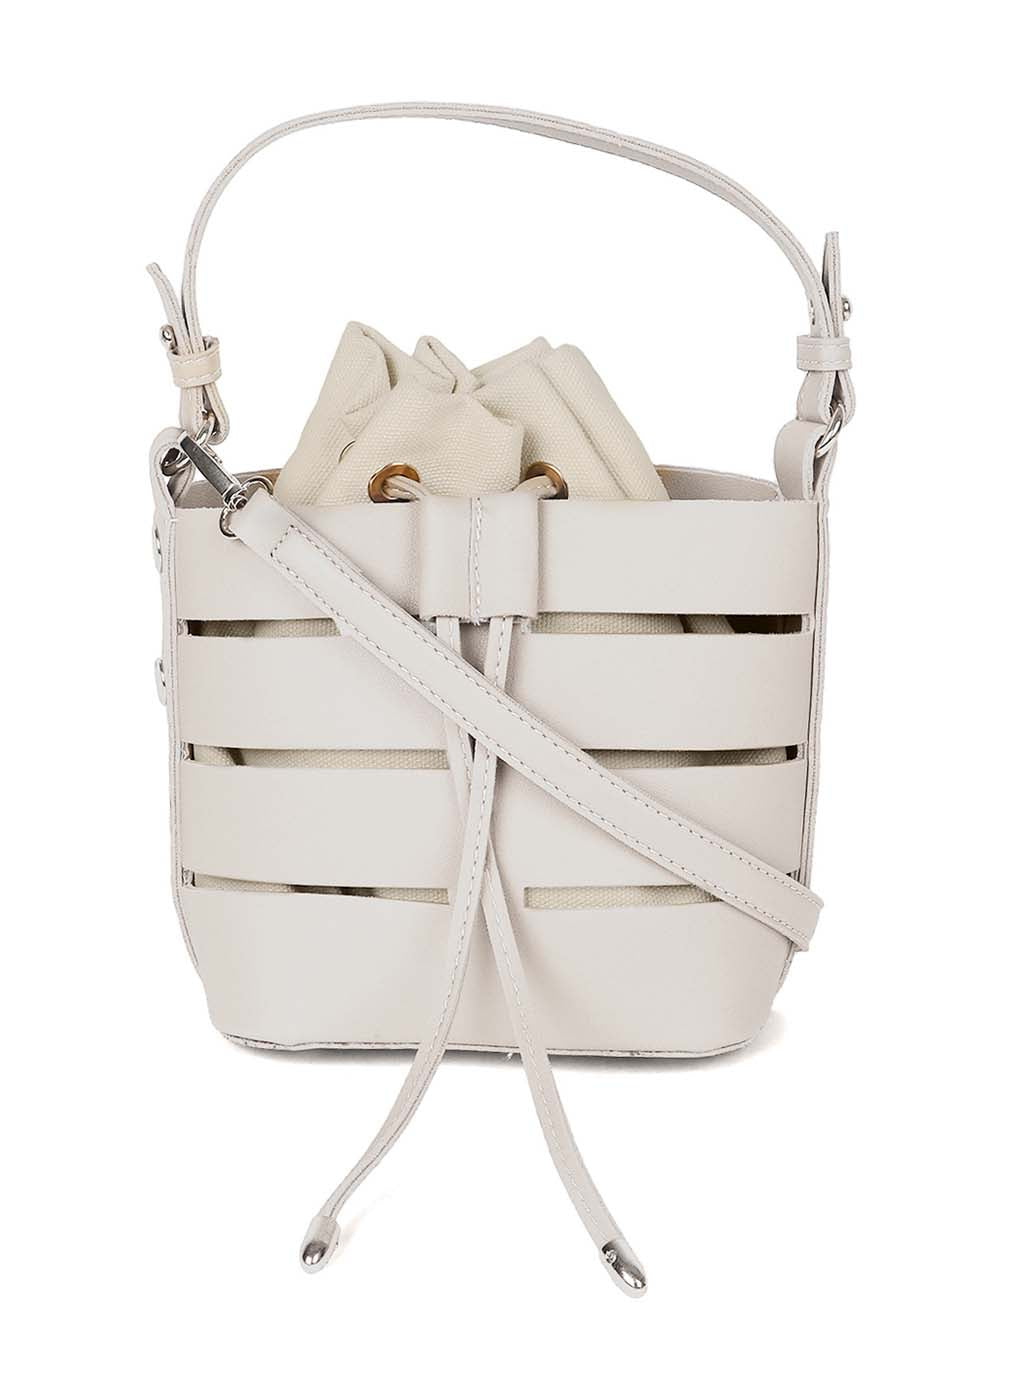 Off White Color Bucket Bag